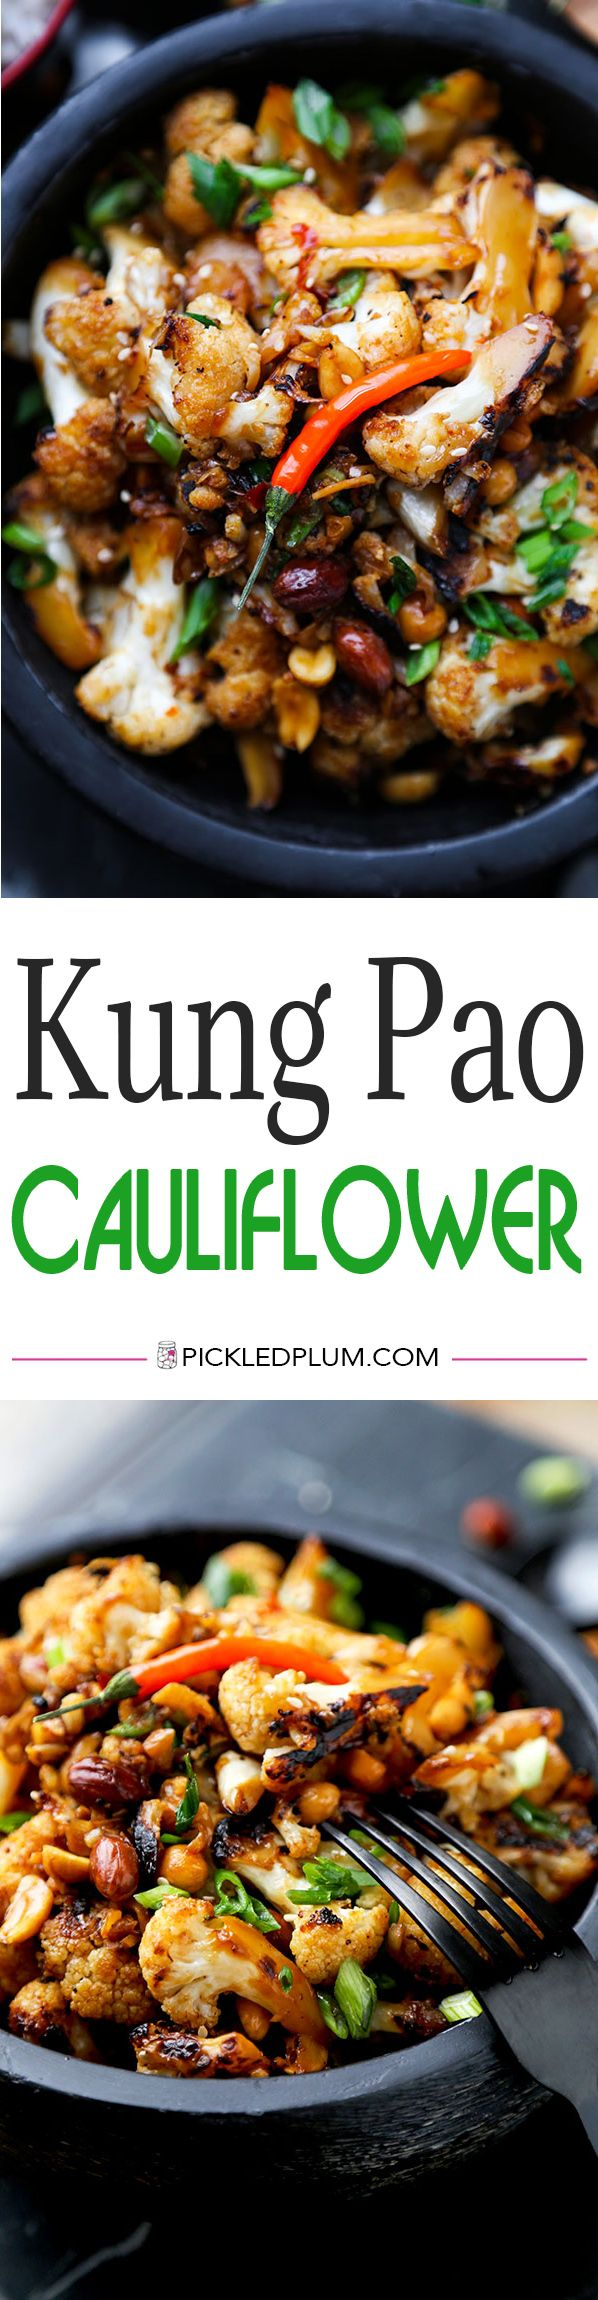 Kung Pao Cauliflower - A delicious alternative to classic Kung Pao Chicken, Kung Pao Cauliflower is just as smoky and satisfying but lower in calories and fat! Recipe, vegetables, healthy, Chinese food, cauliflower | pickledplum.com